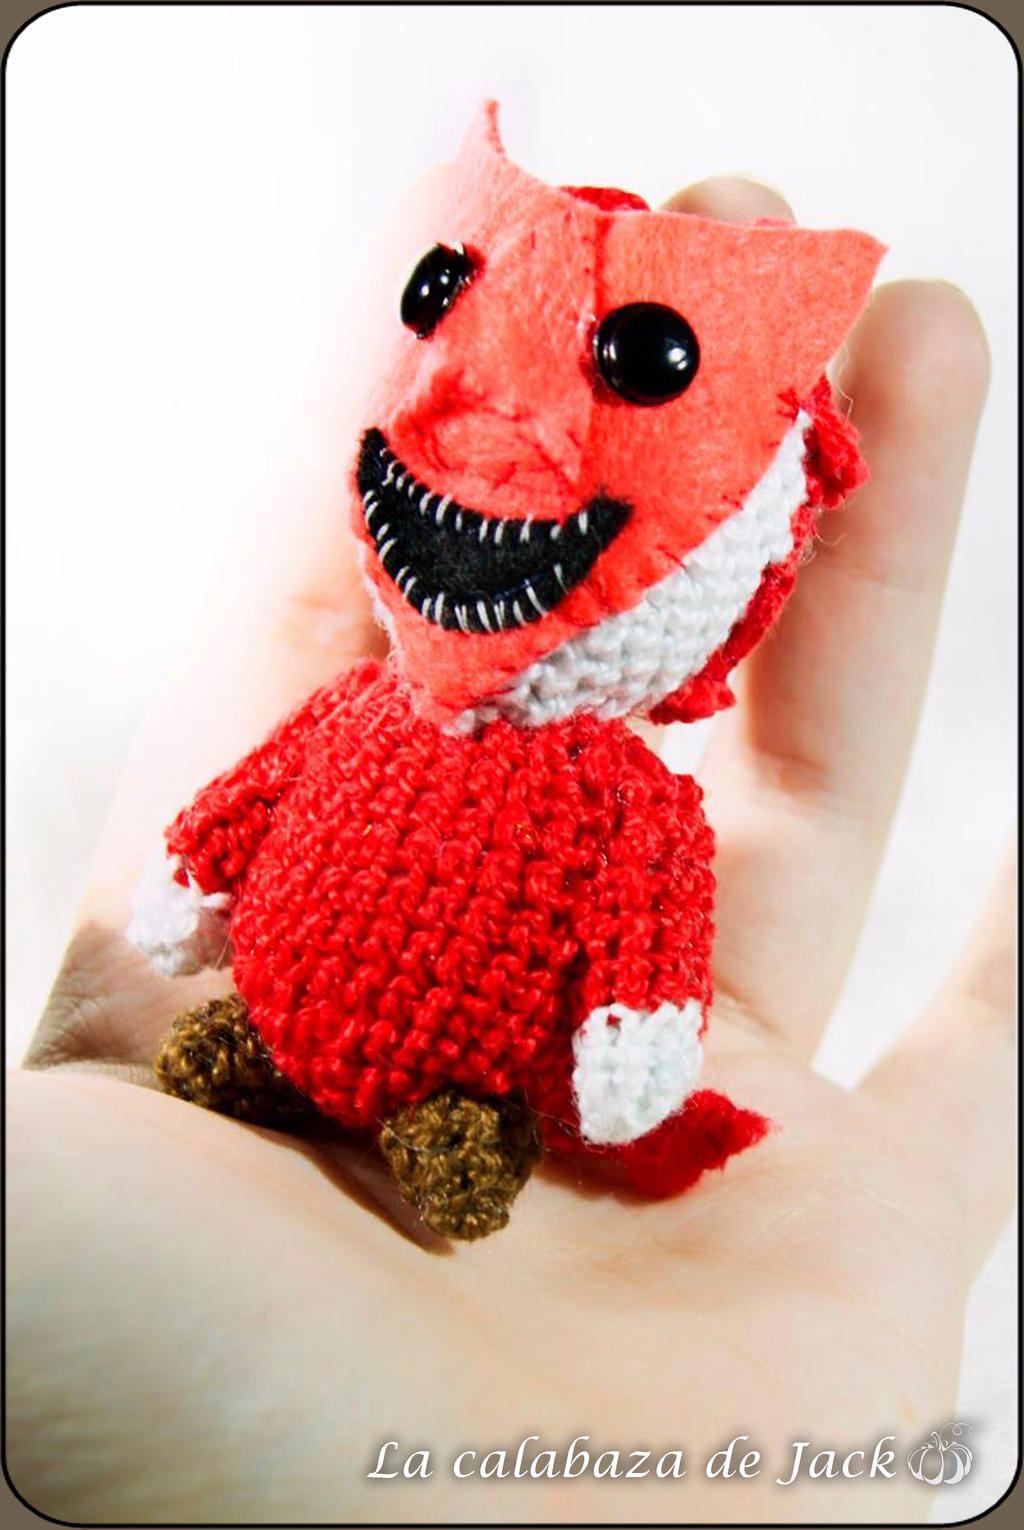 Lock Amigurumi - Nightmare before Christmas